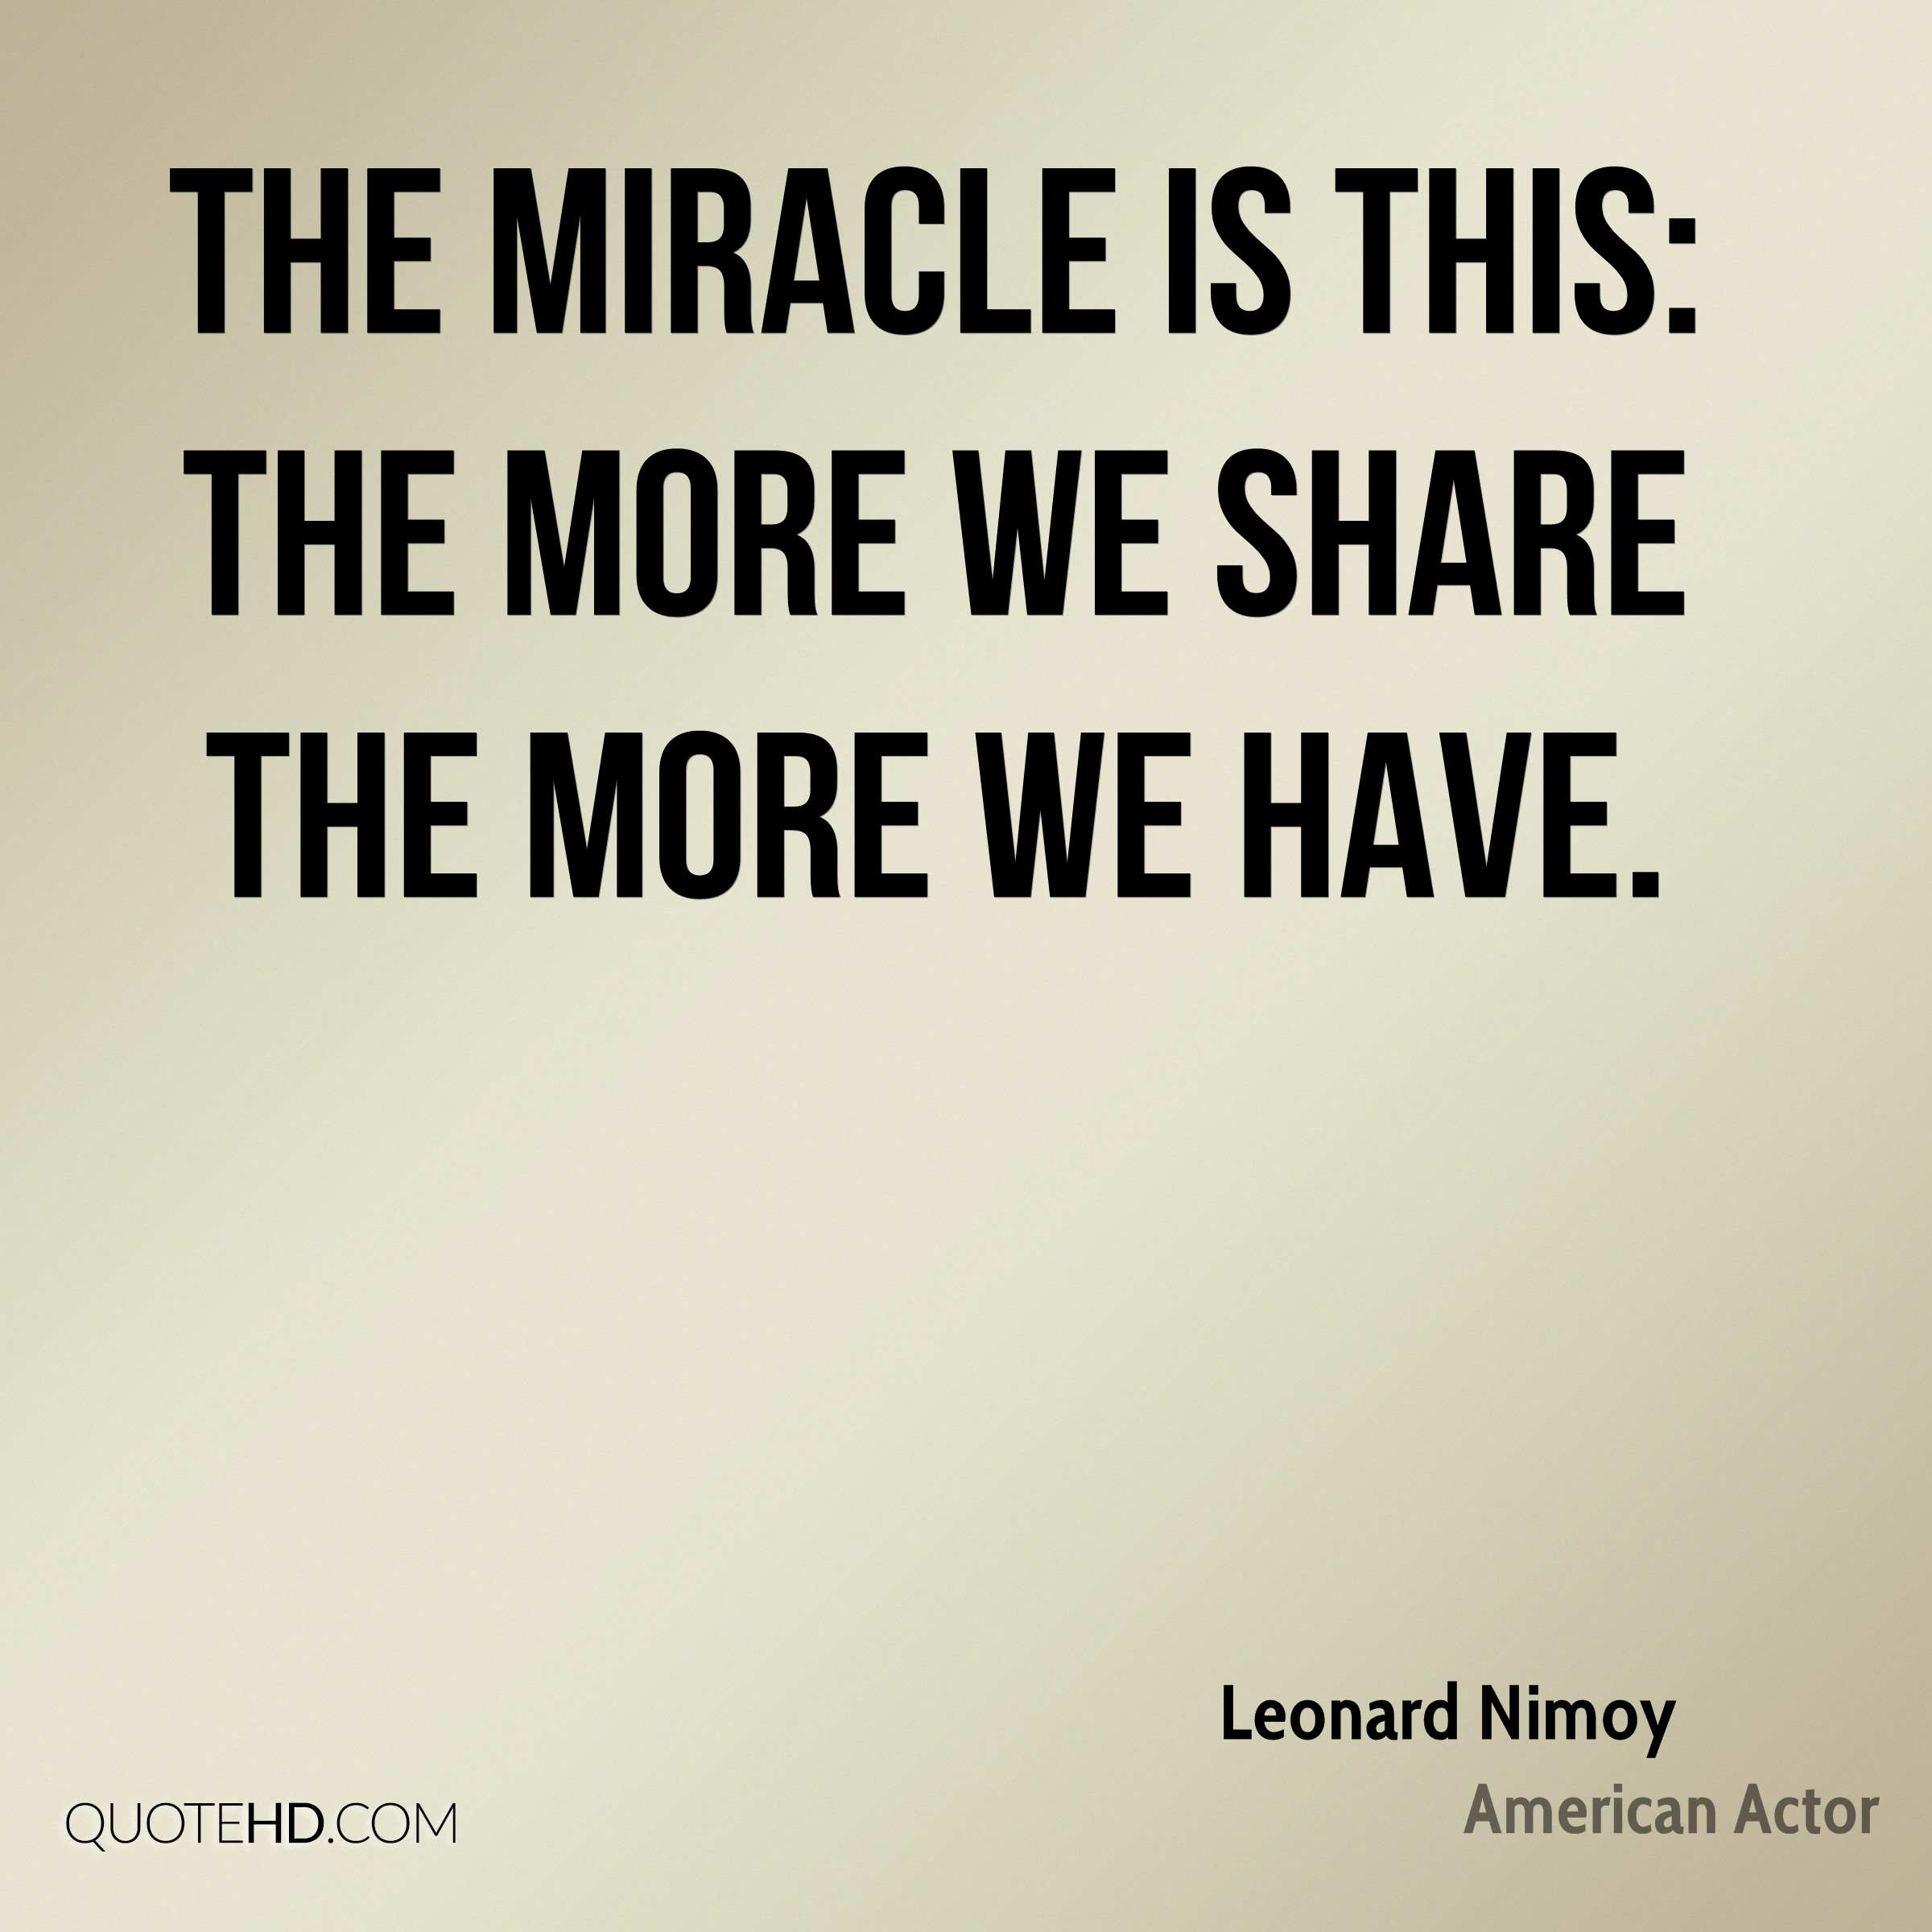 The miracle is this: the more we share the more we have.